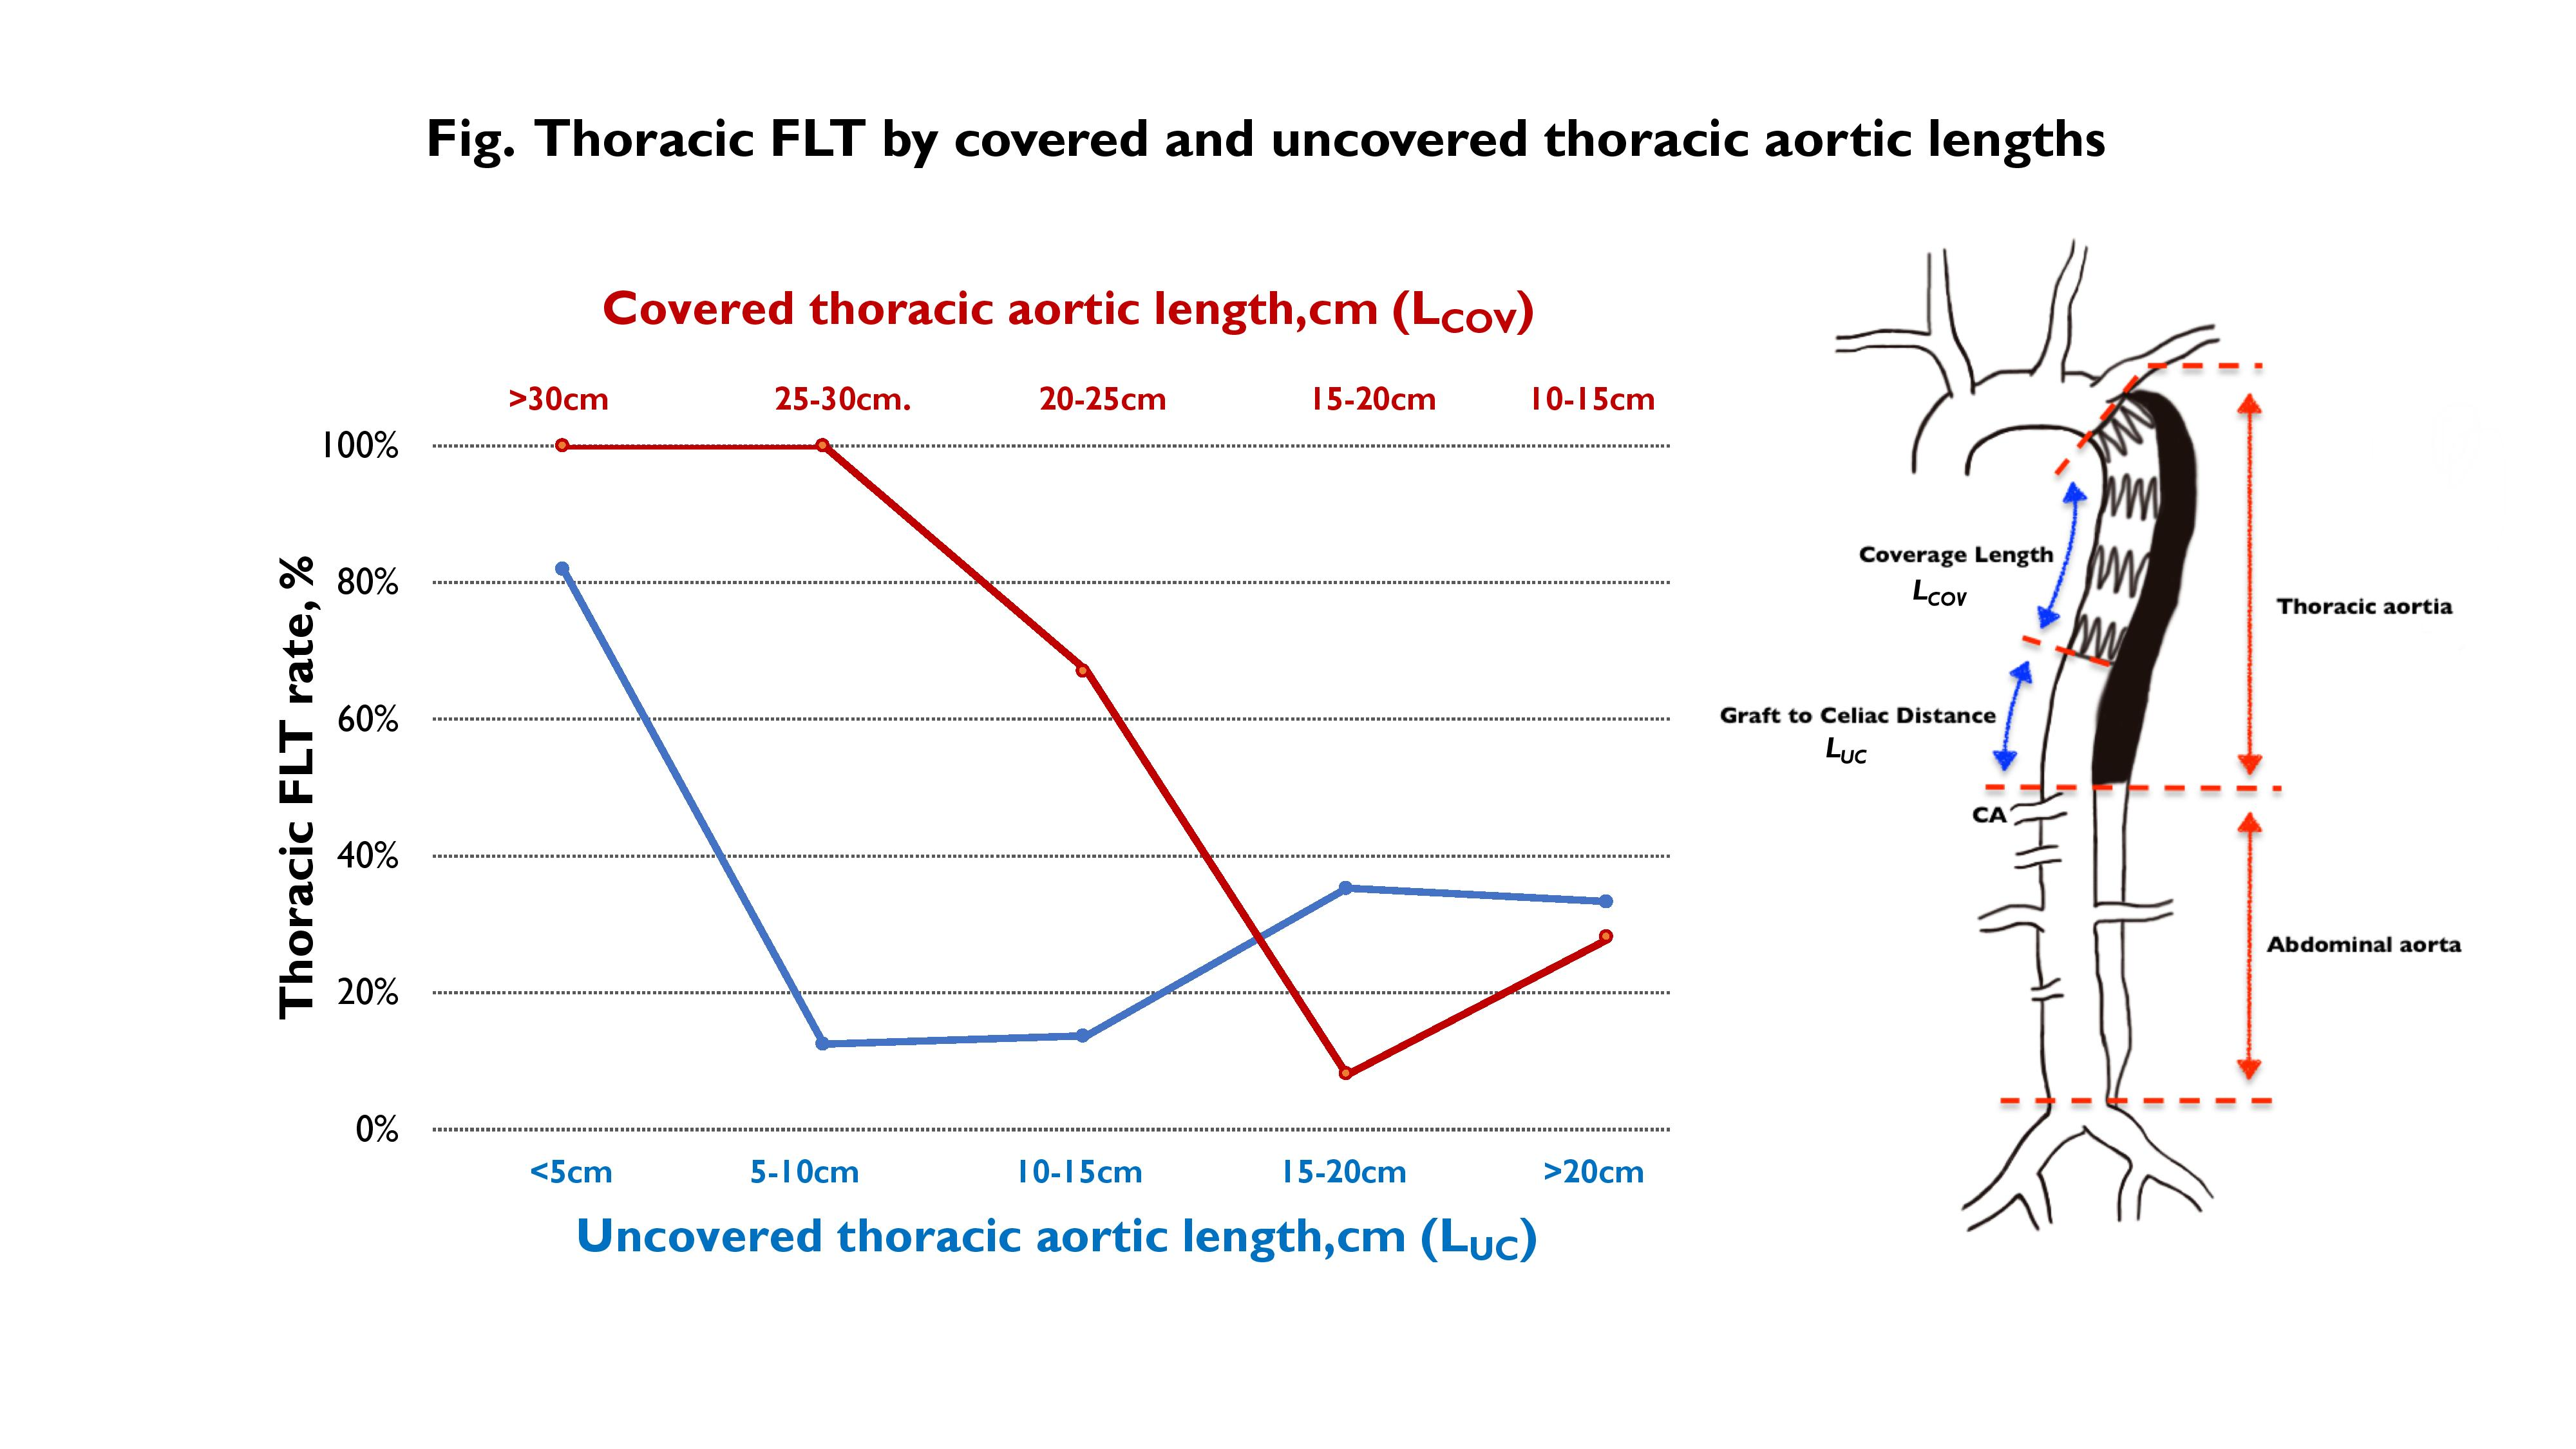 Scvs Impact Of Aortic Coverage Length On Thoracic And Abdominal